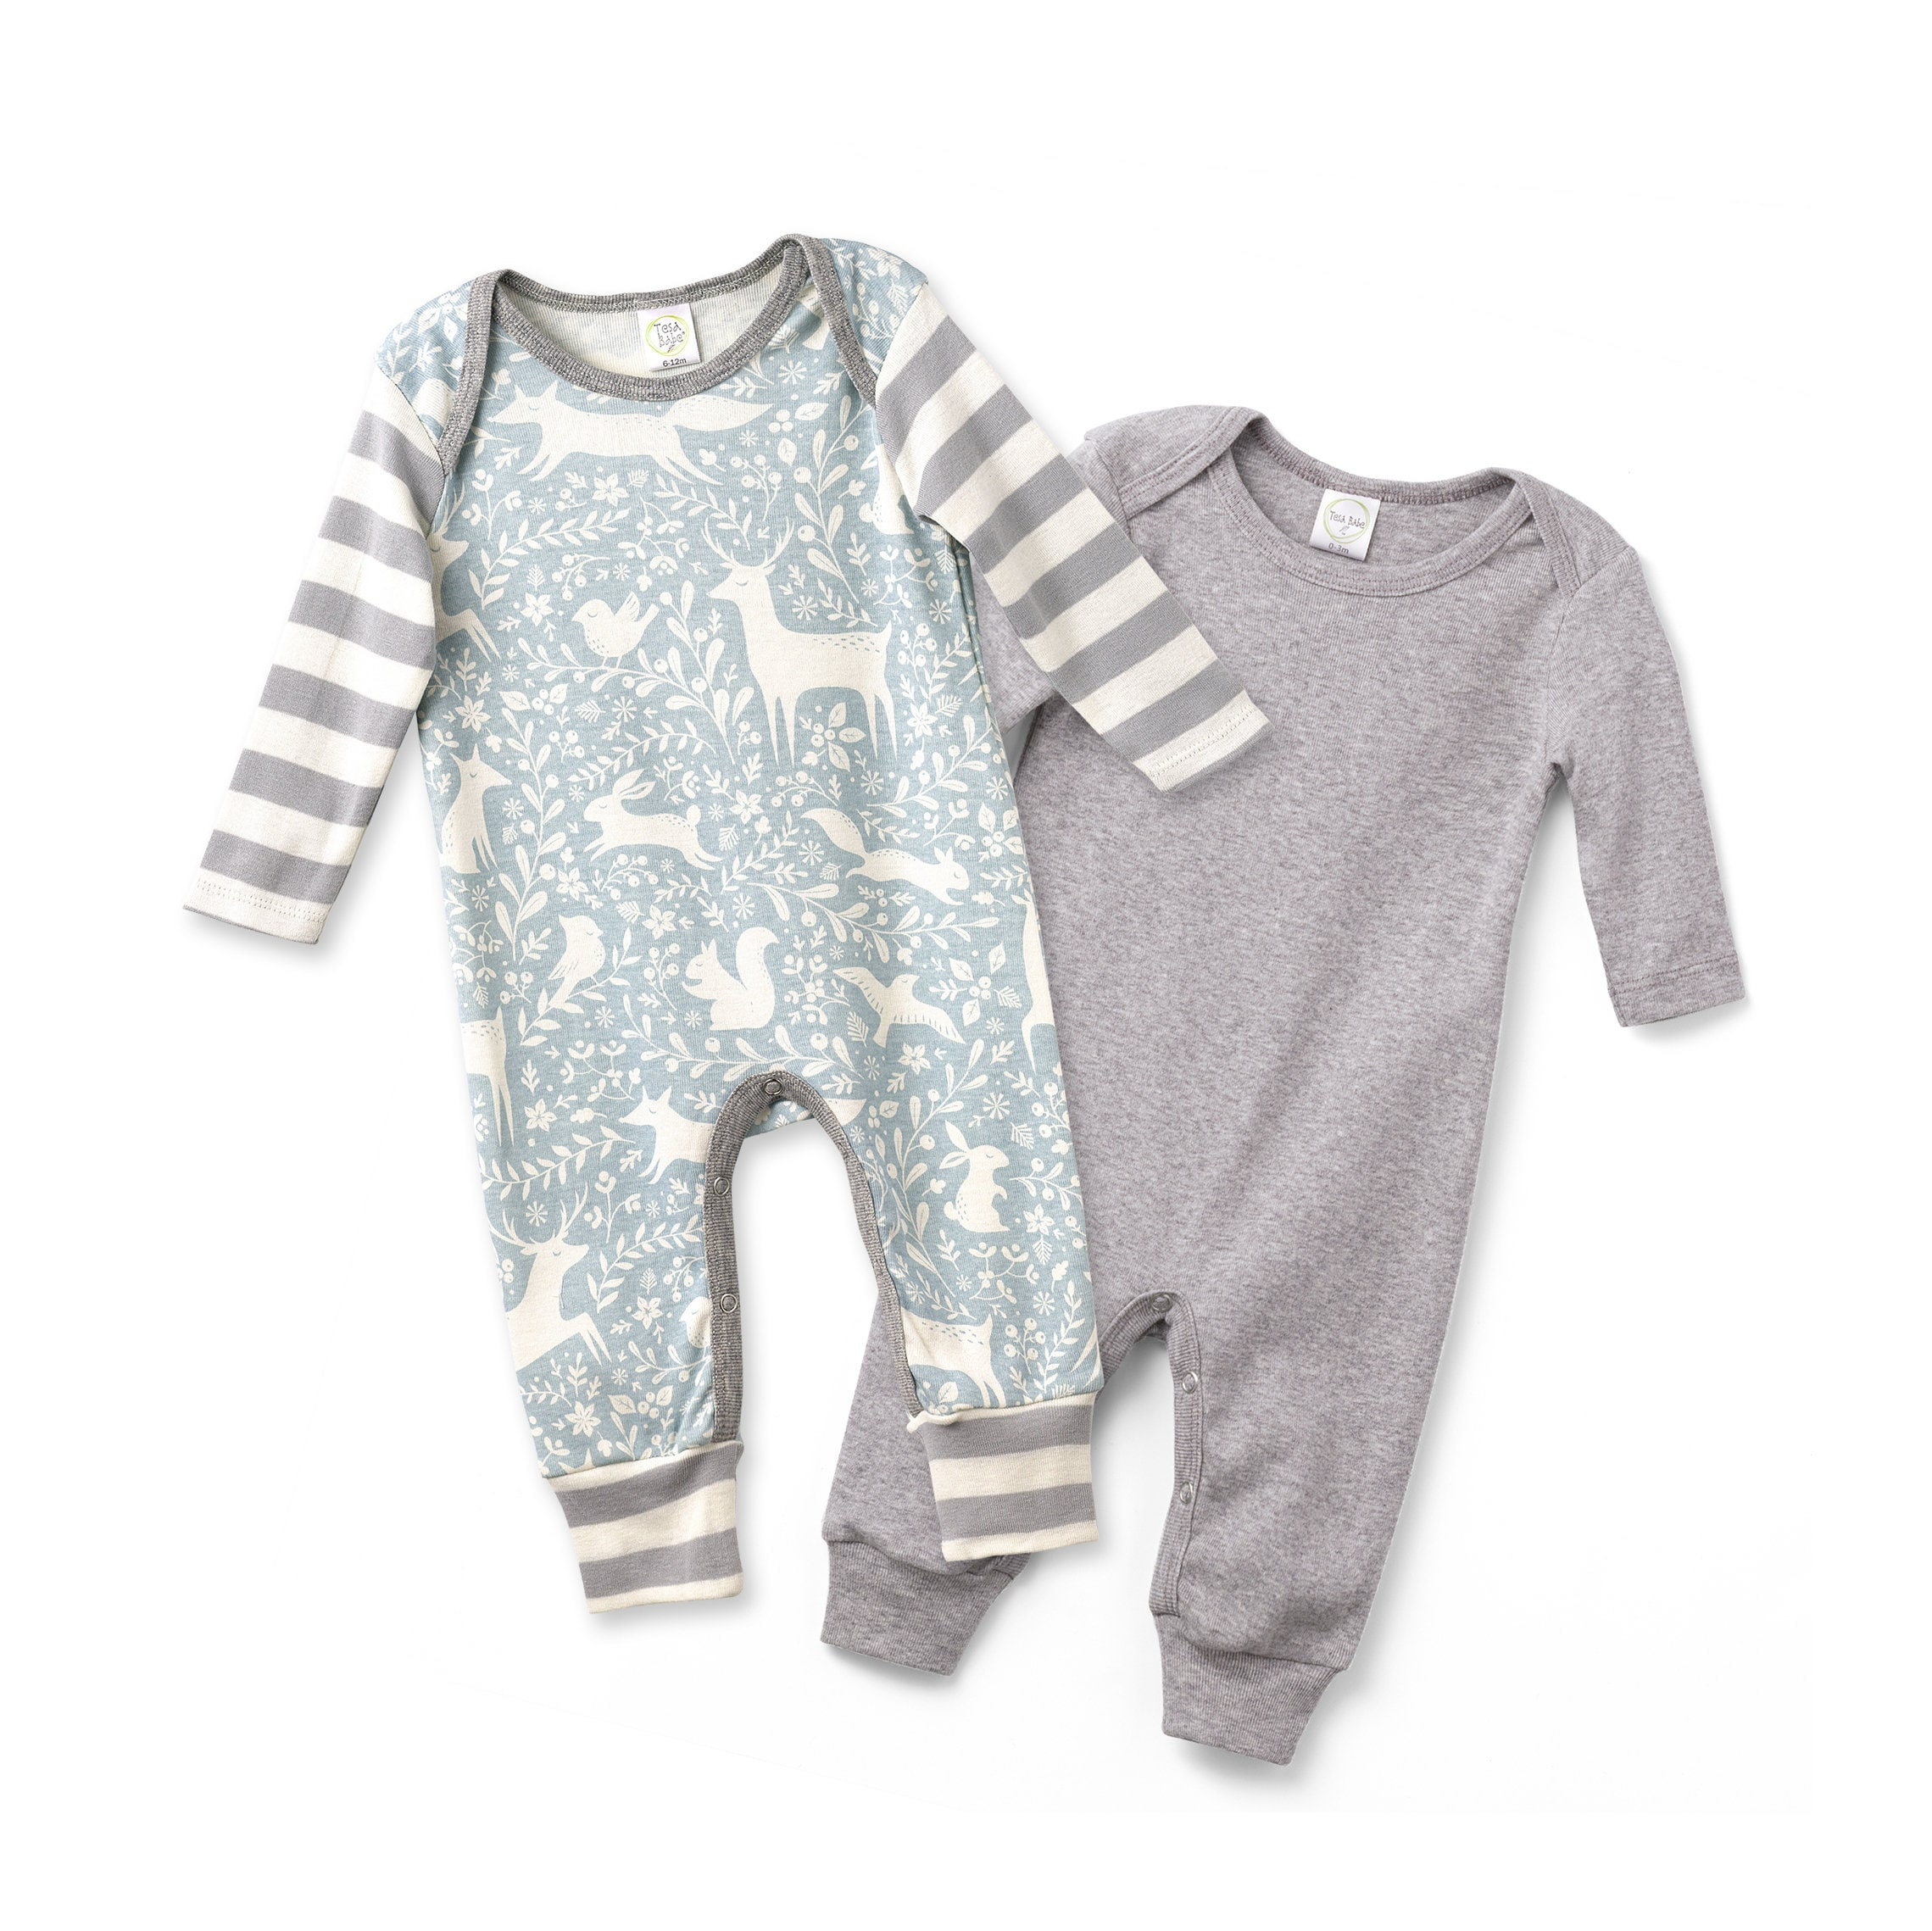 efb17dc2d610 Newborn Rompers Grey and Woodland Animal Set of 2